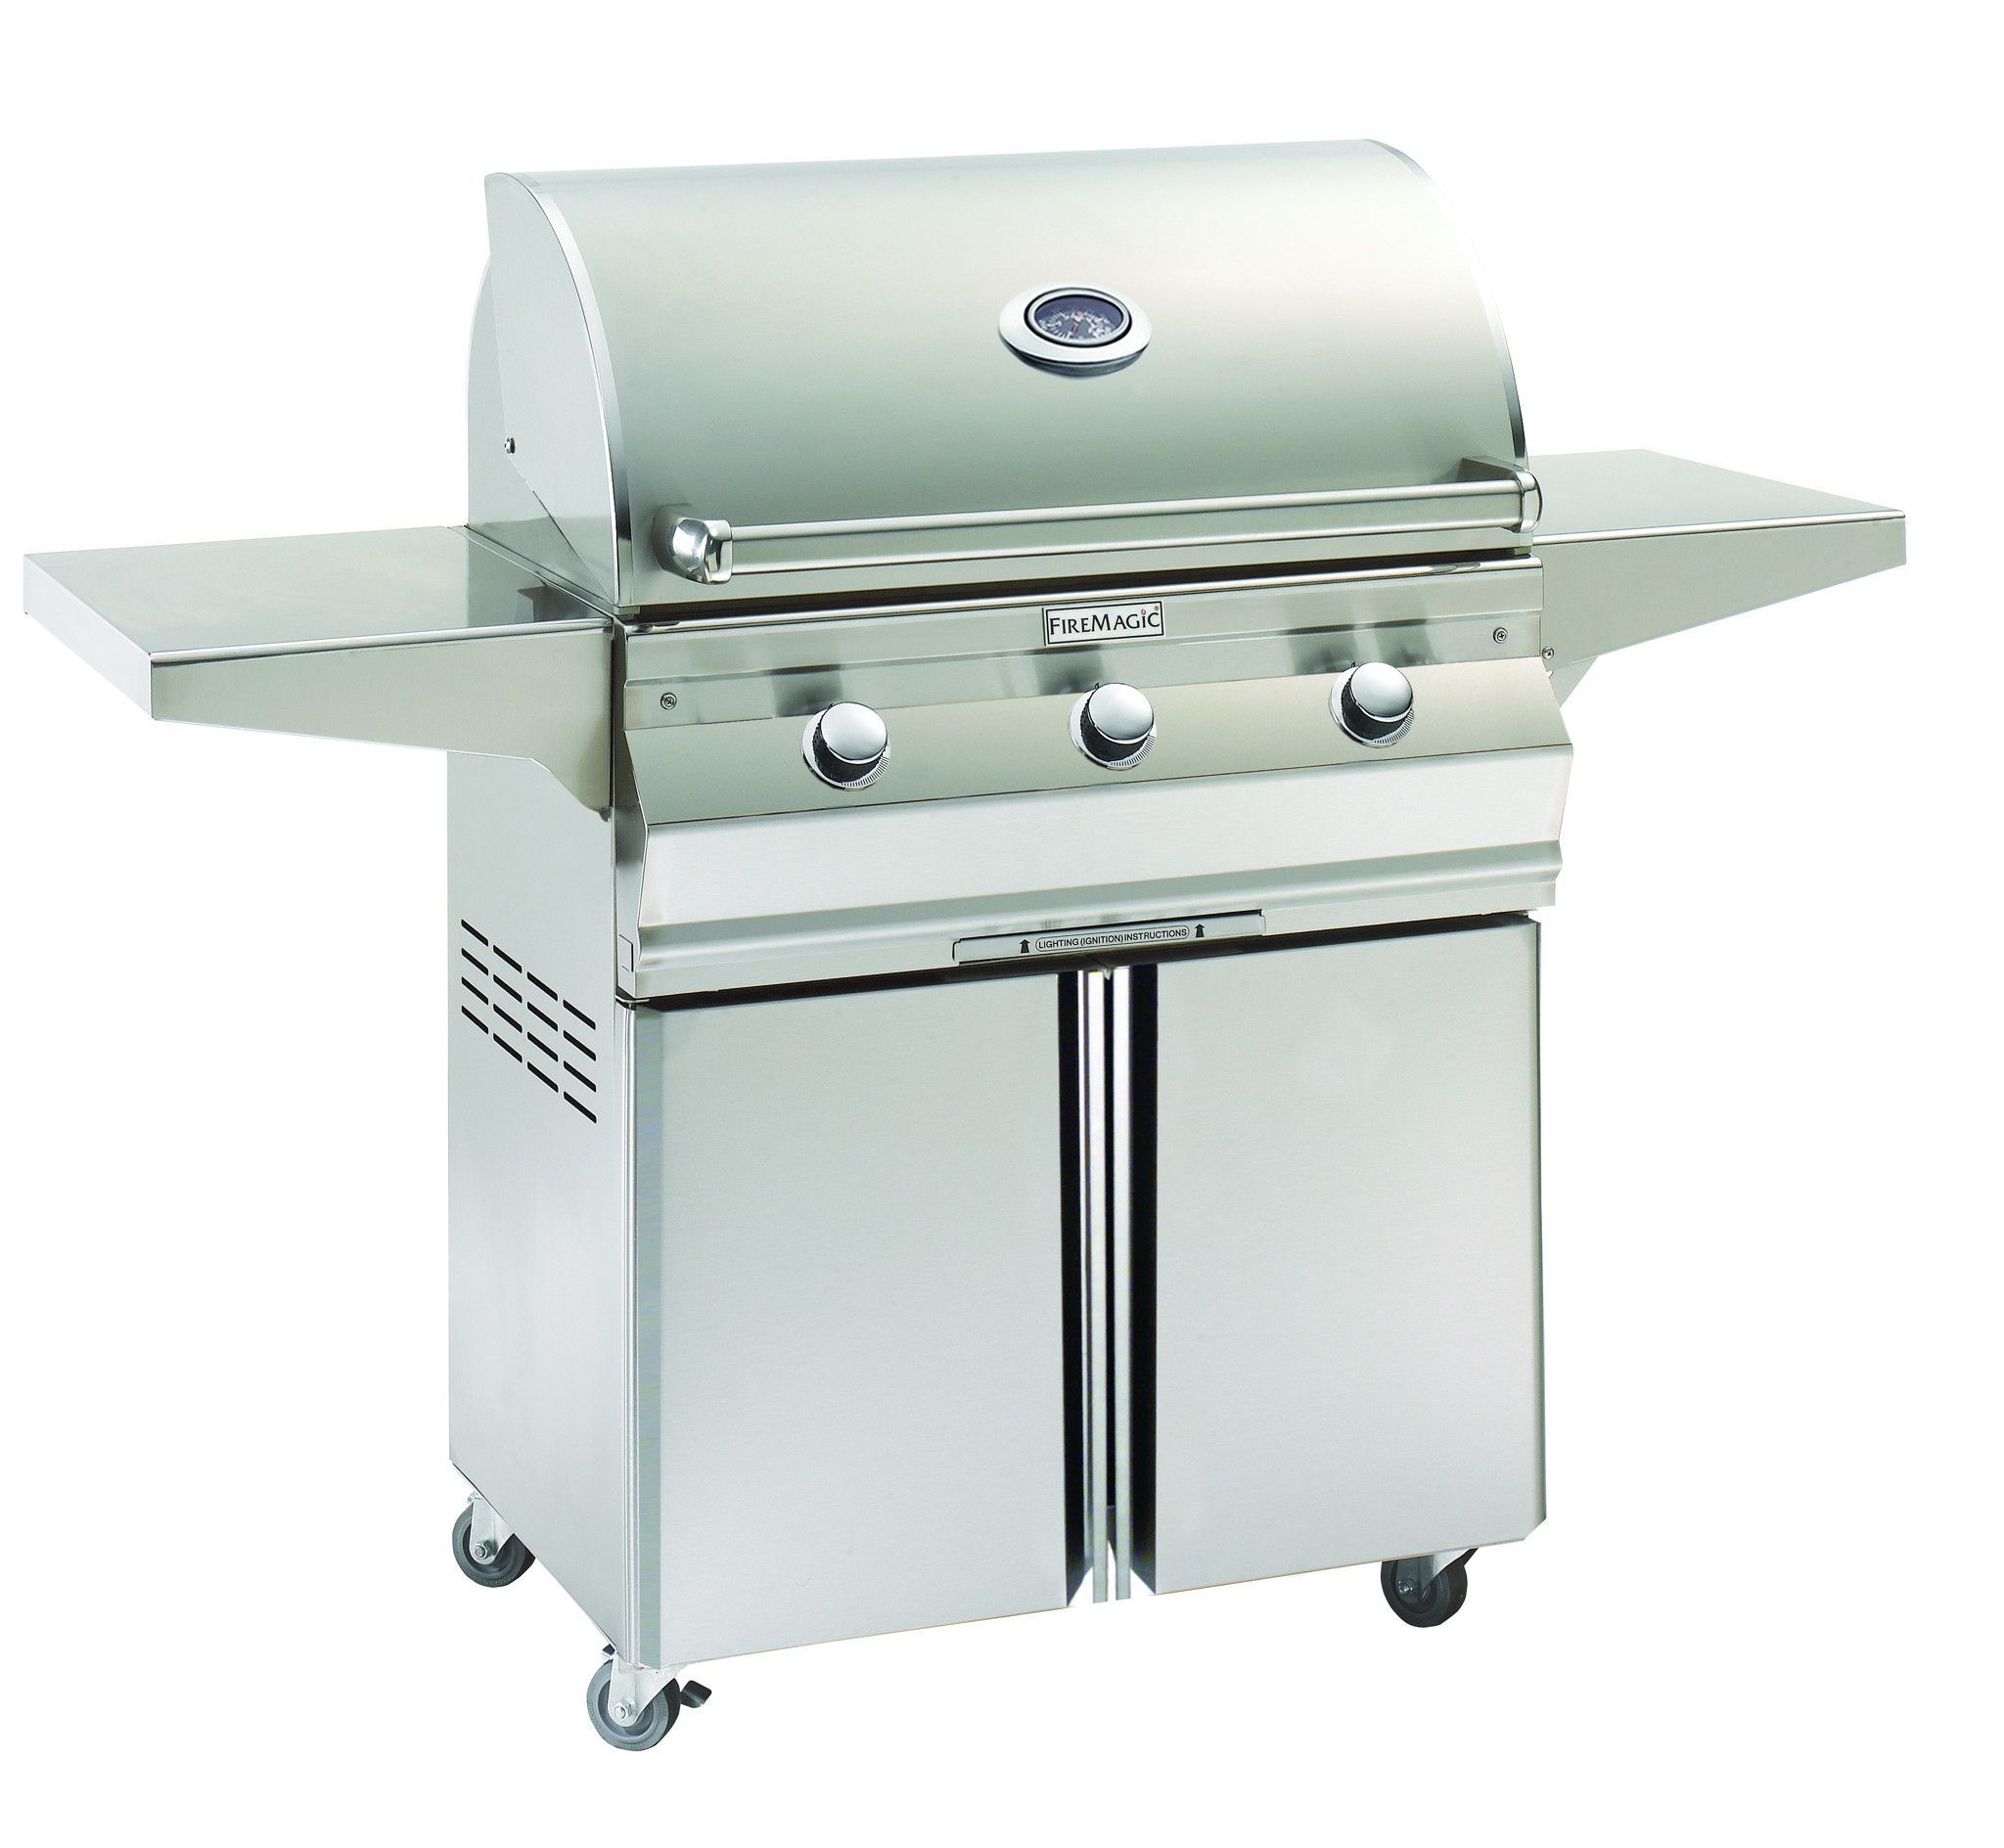 Fire Magic Choice Stand Alone Cart Gas Grill